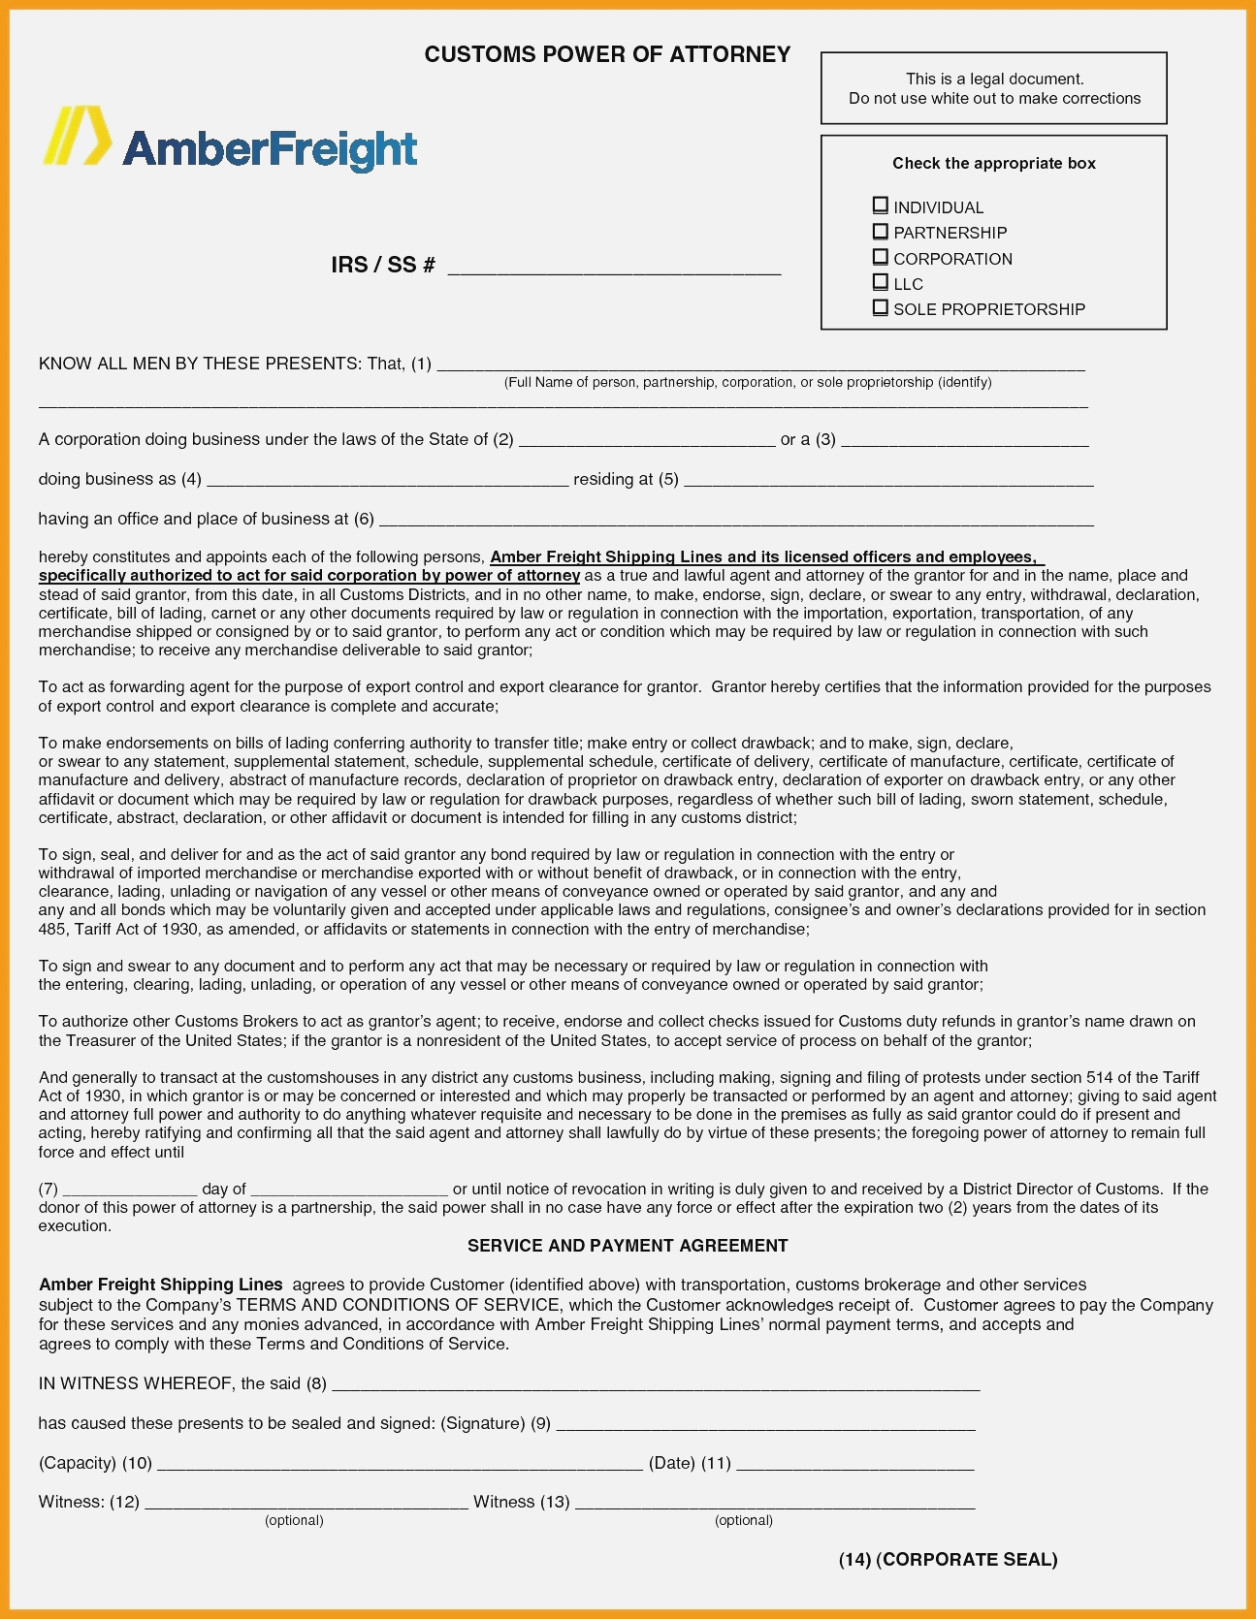 Customs Power Of Attorney Form Fillable